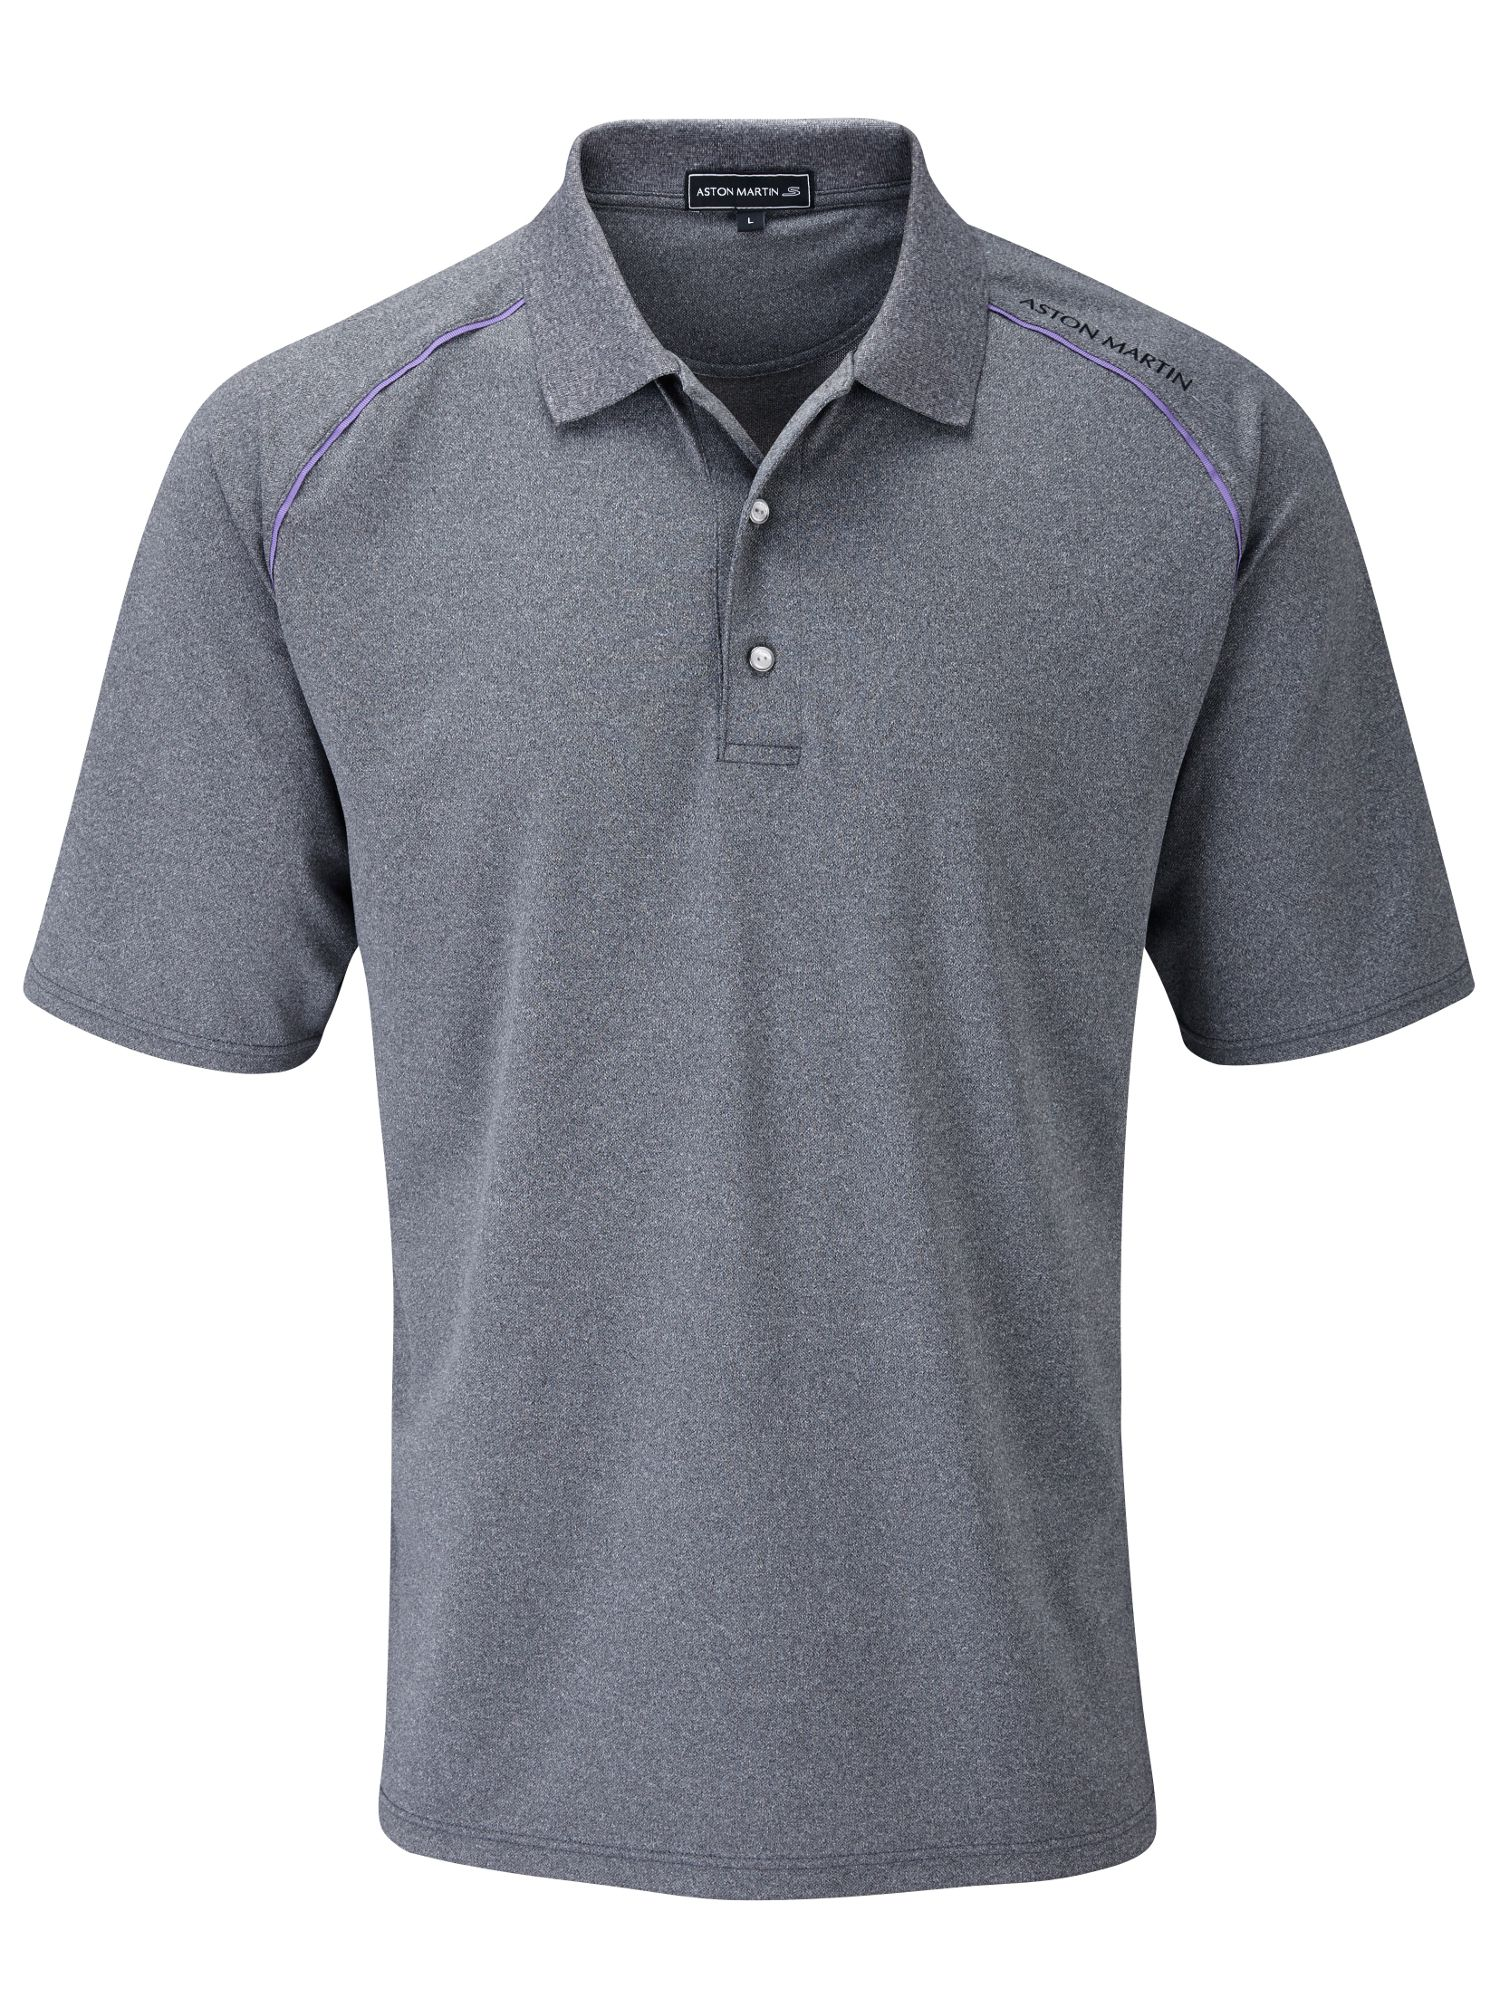 Raglan sleeve polo shirt